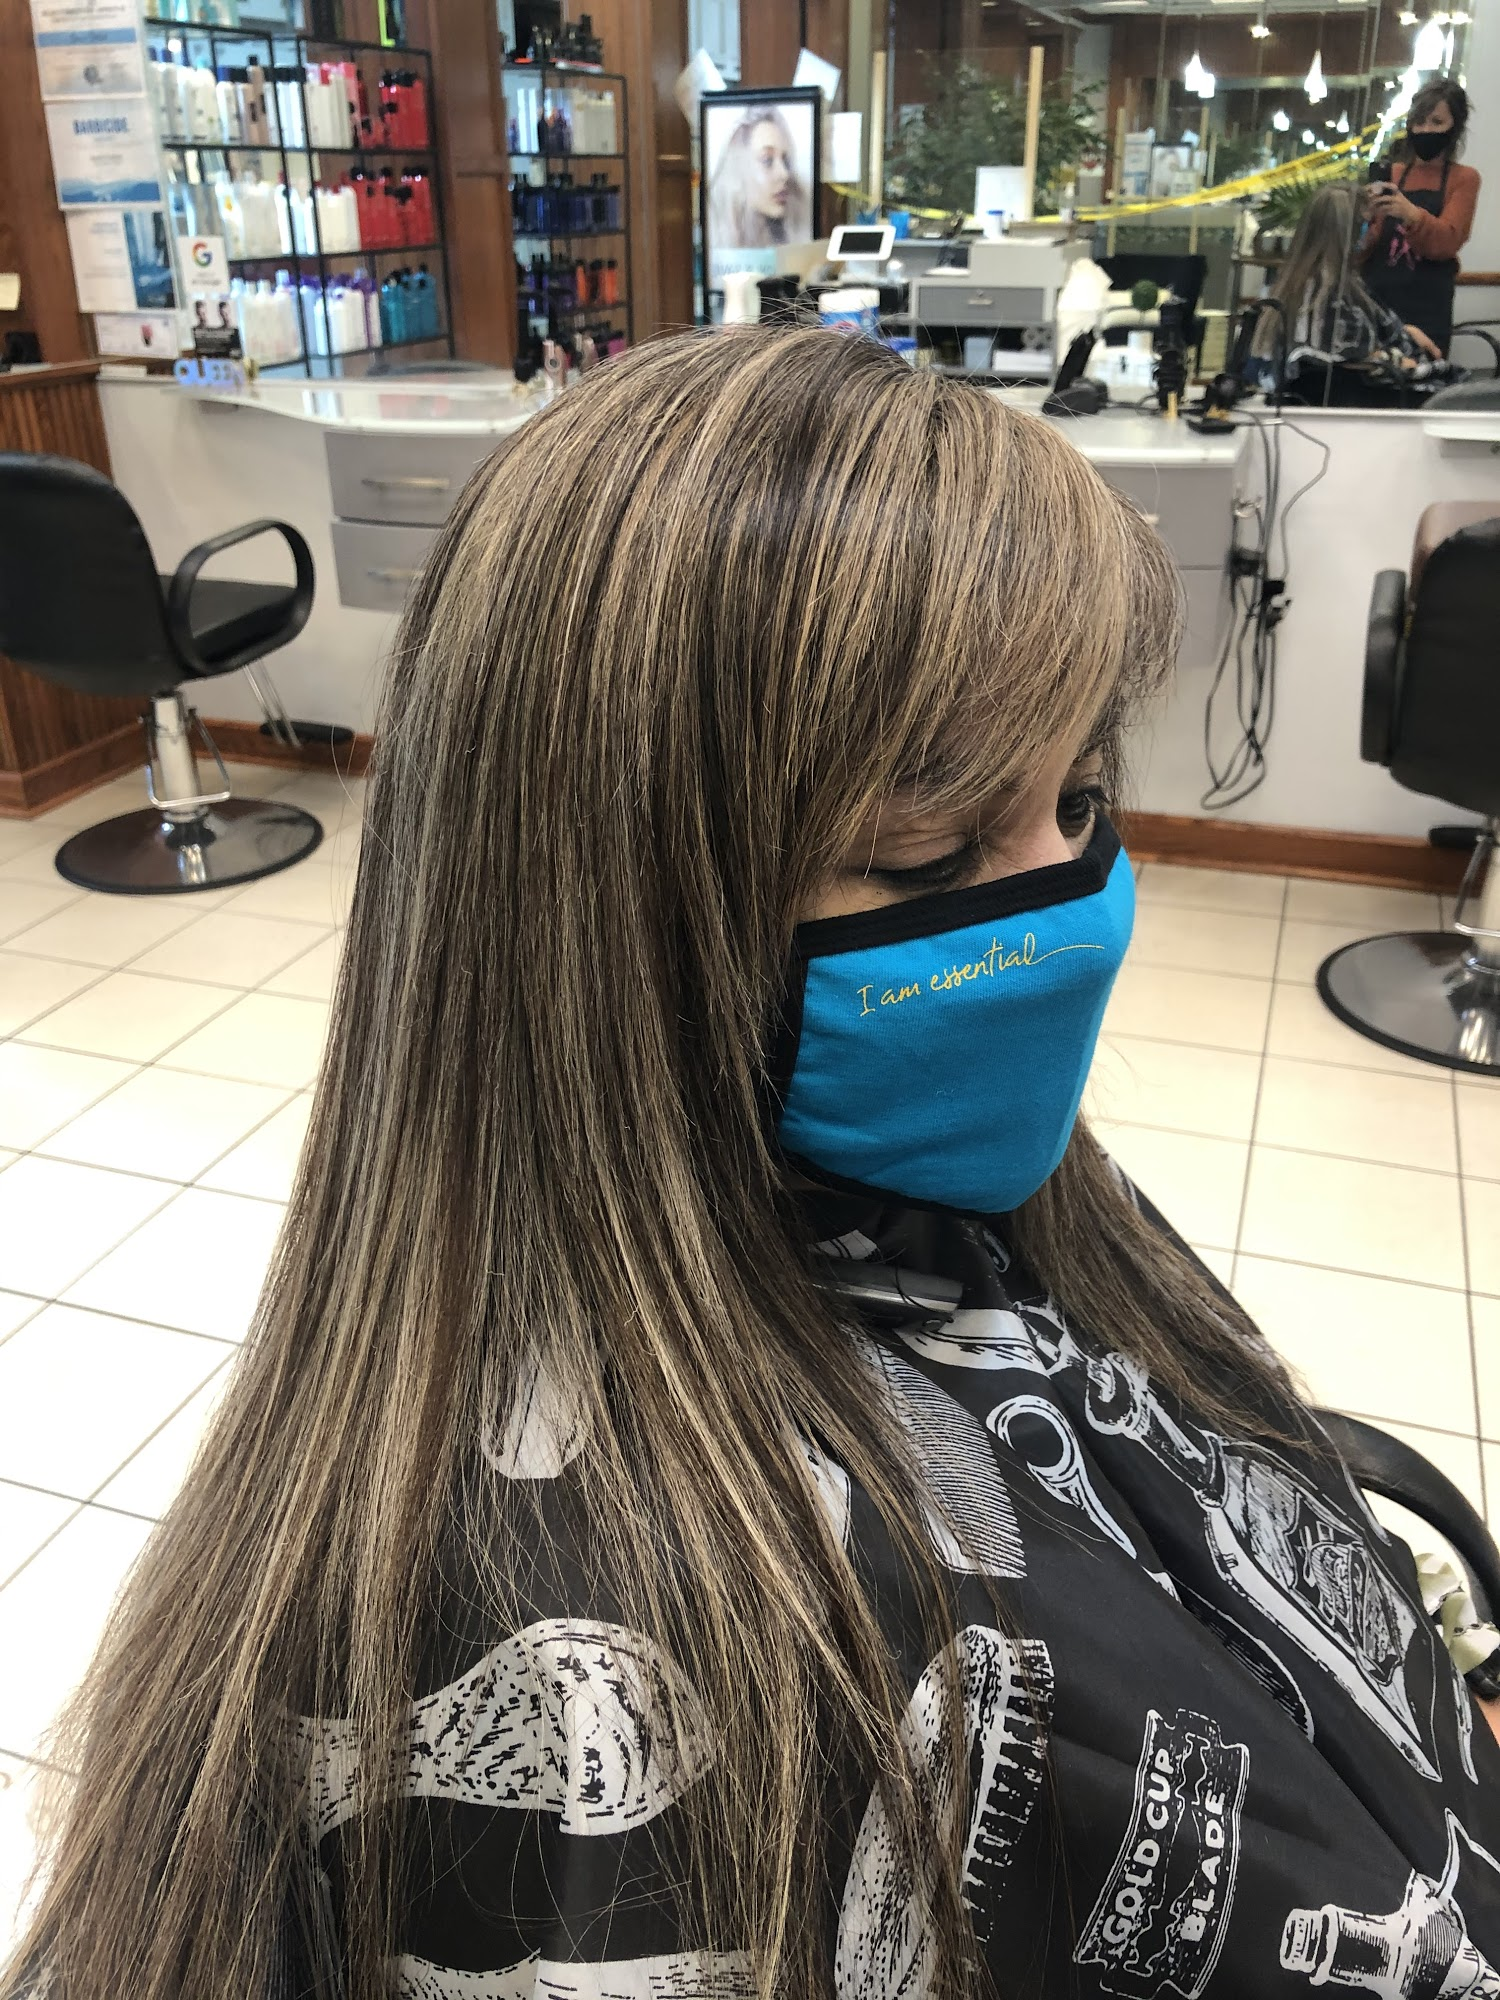 Curley Q's Too Salon Valley 14700 E Indiana Ave, Spokane Valley